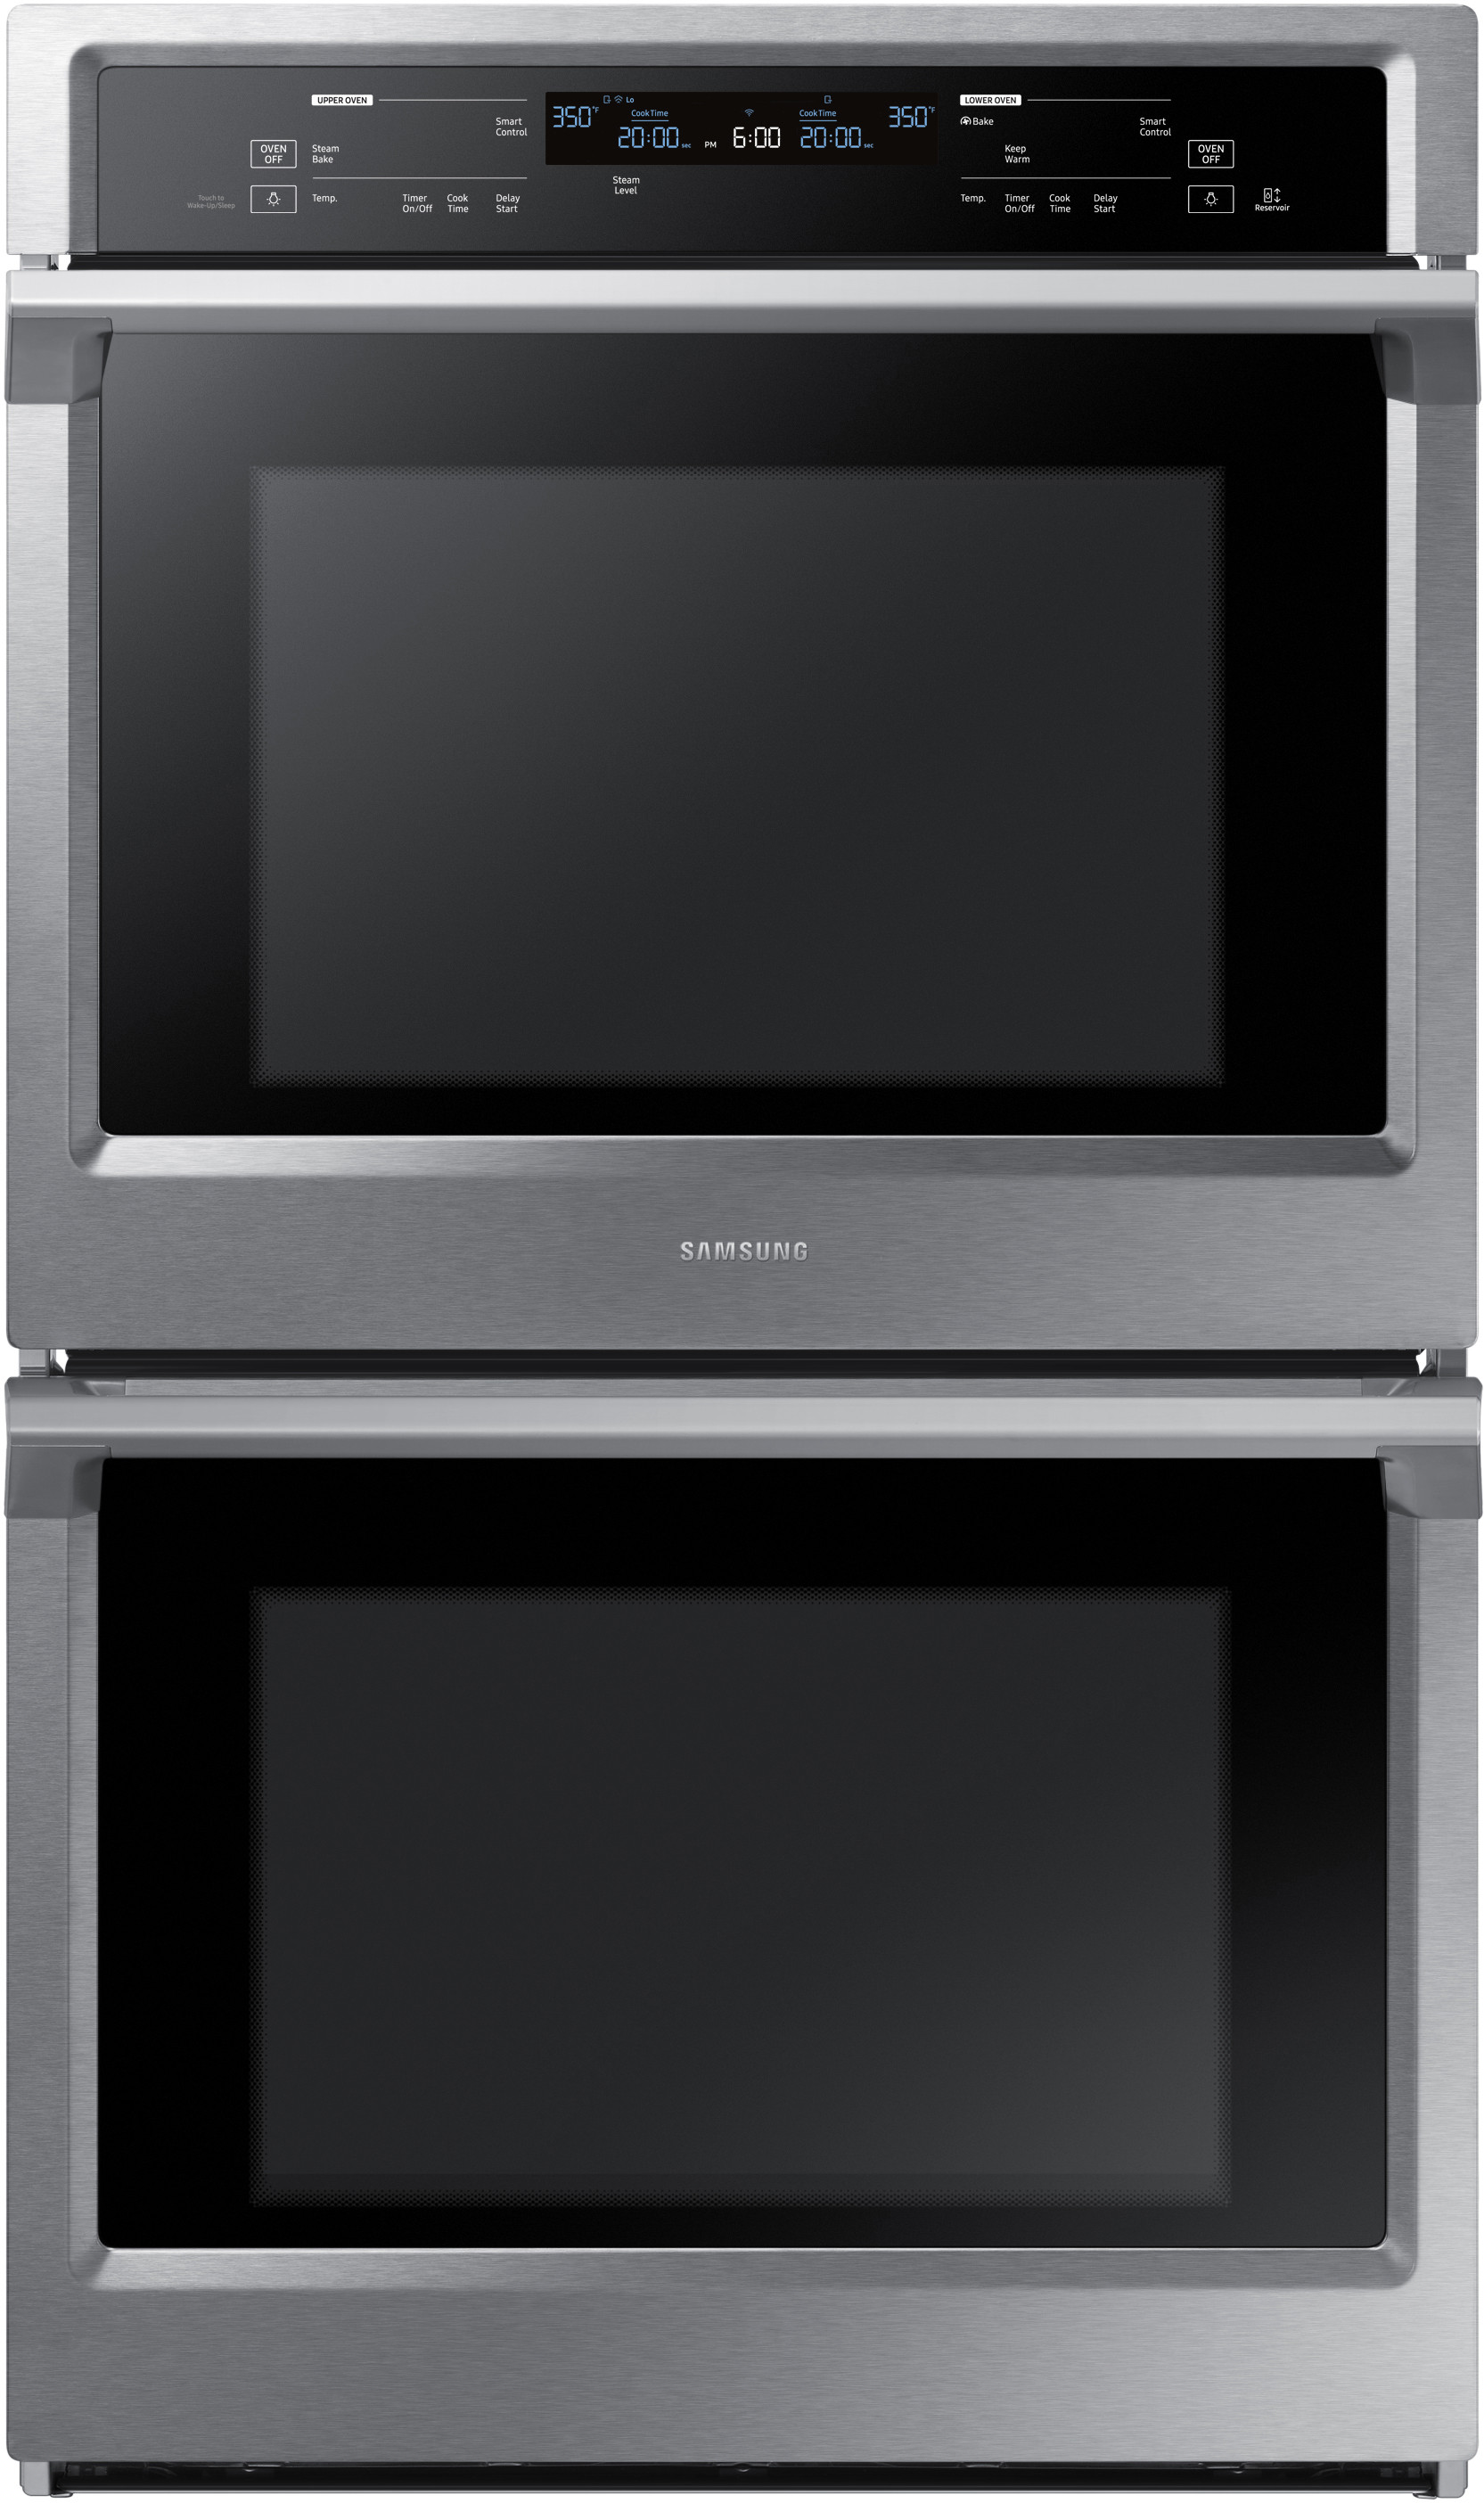 Samsung Nv51k6650ds 30 Inch Electric Double Wall Oven With 51 Cu Wiring Zones Kitchen Ft Capacity Steam Cook Dual Convection Rapid Preheat Delay Bake Electronic Touch